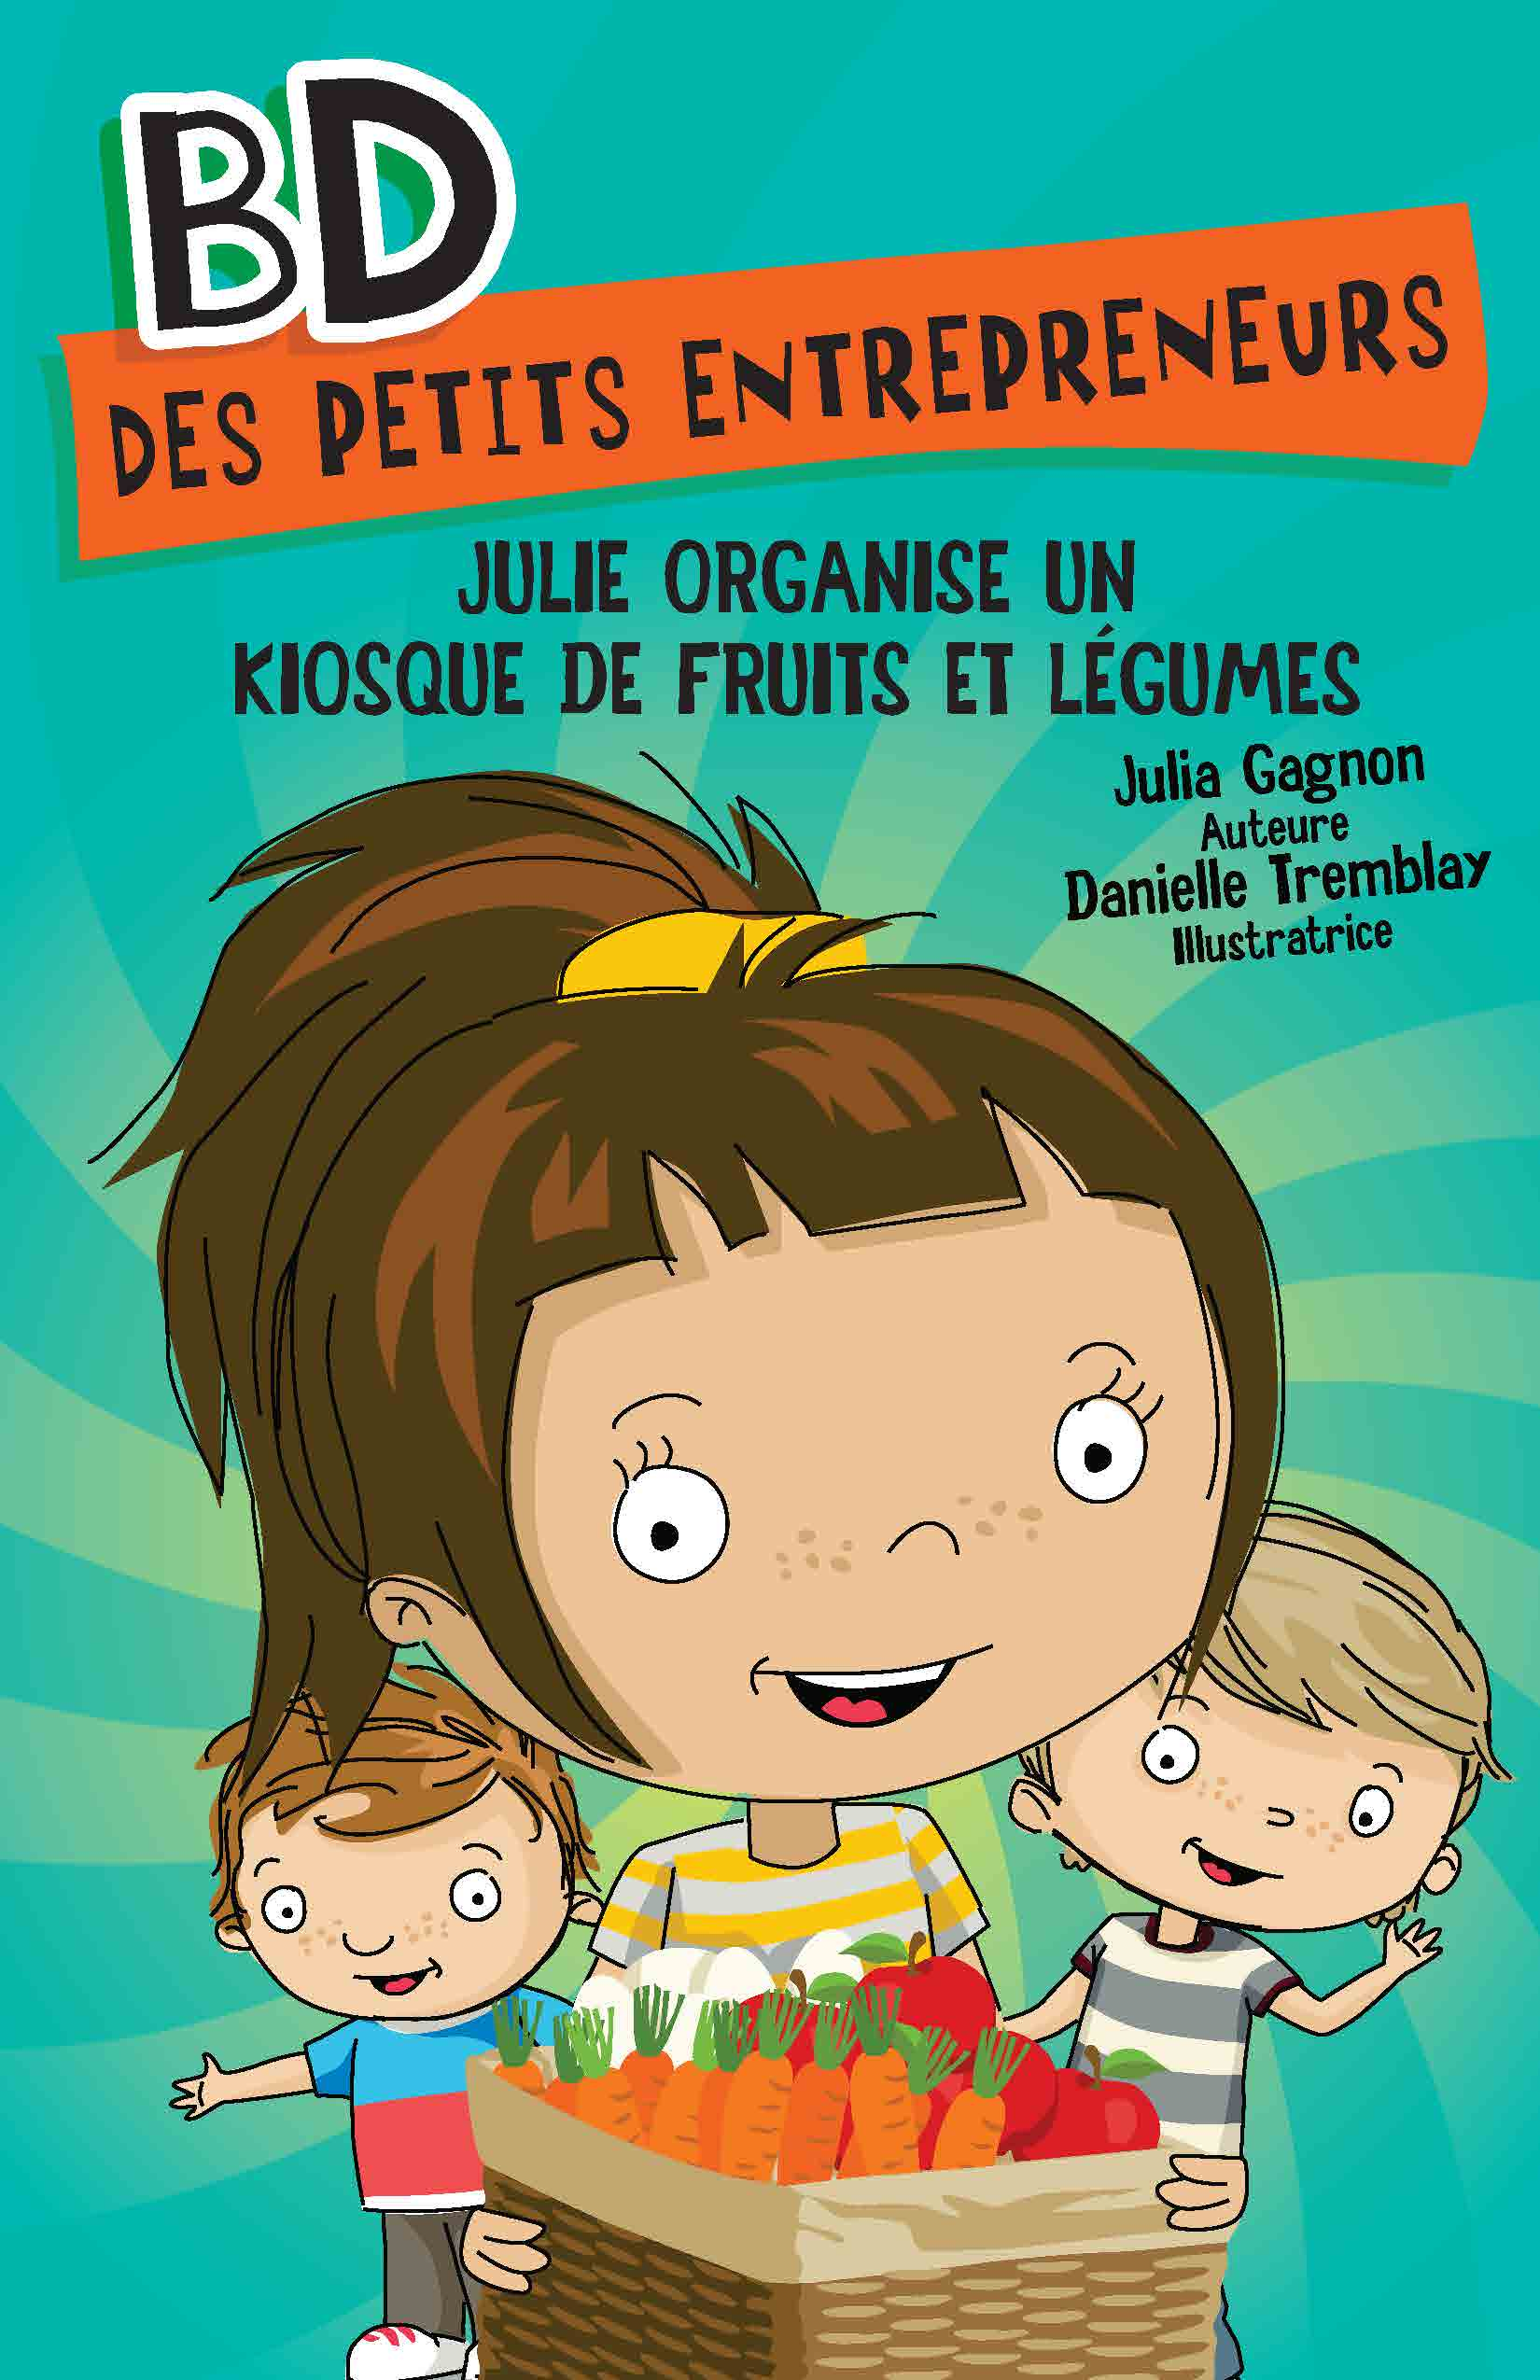 Julie organise un kiosque de fruits et légumes